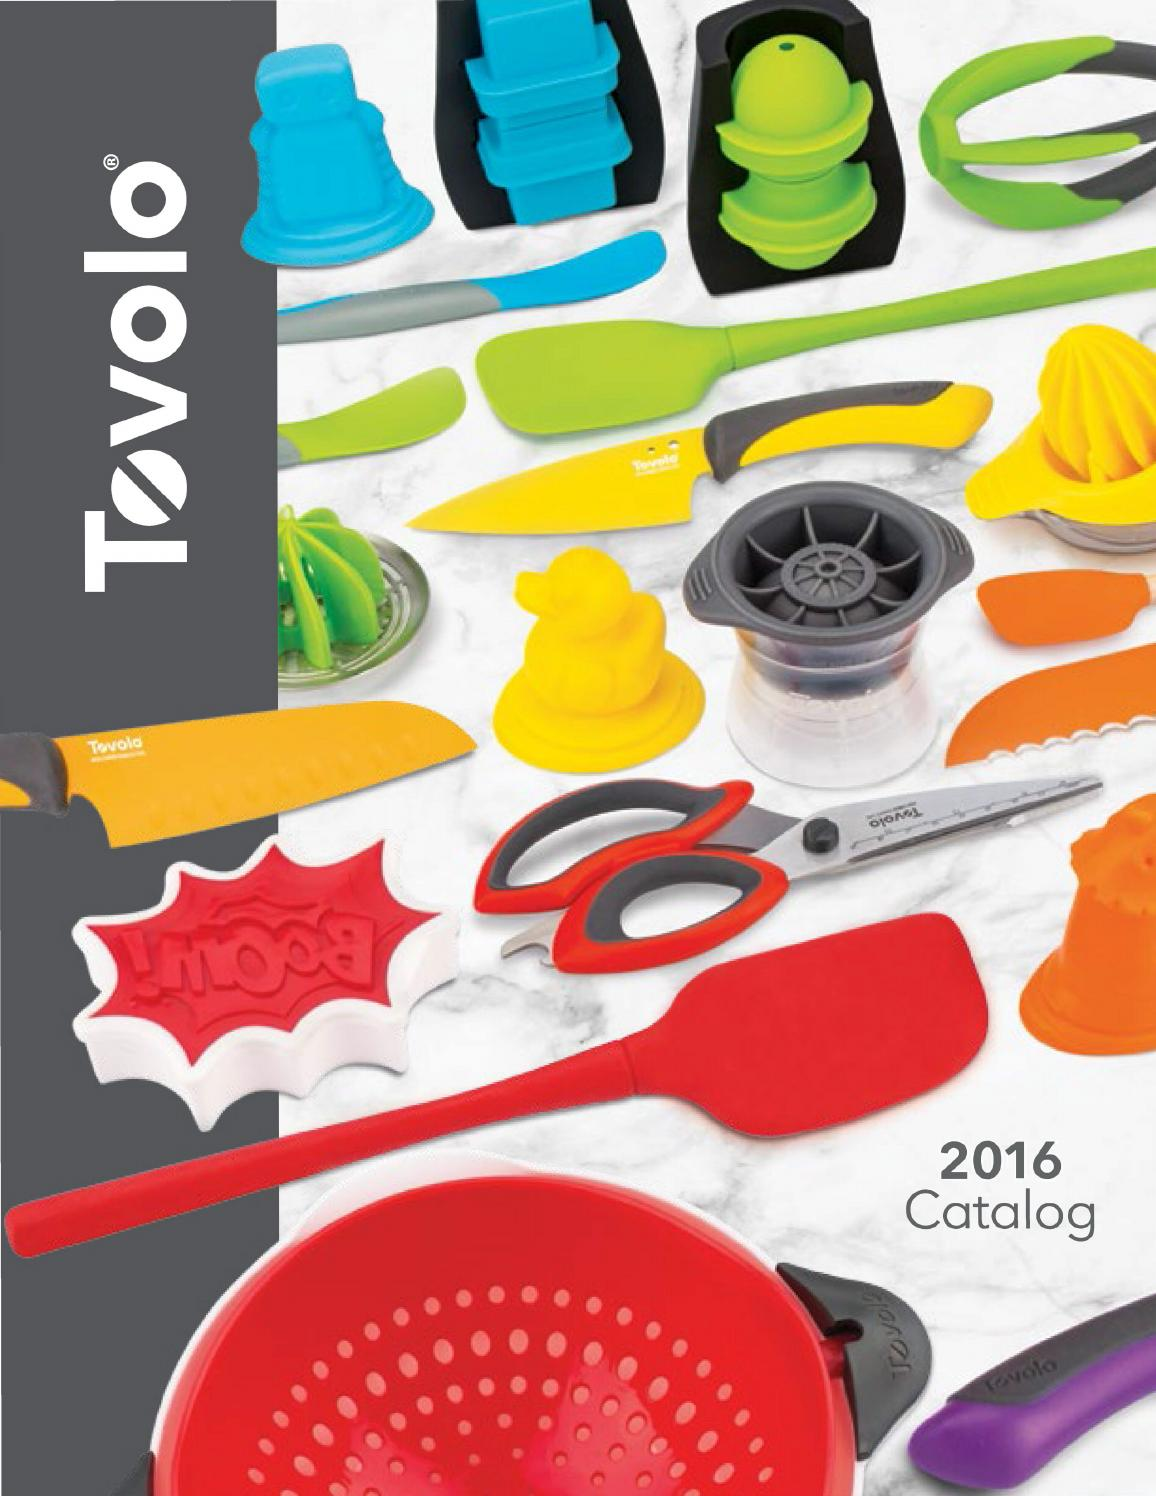 Tovolo catalog 2016 by Twist Sales